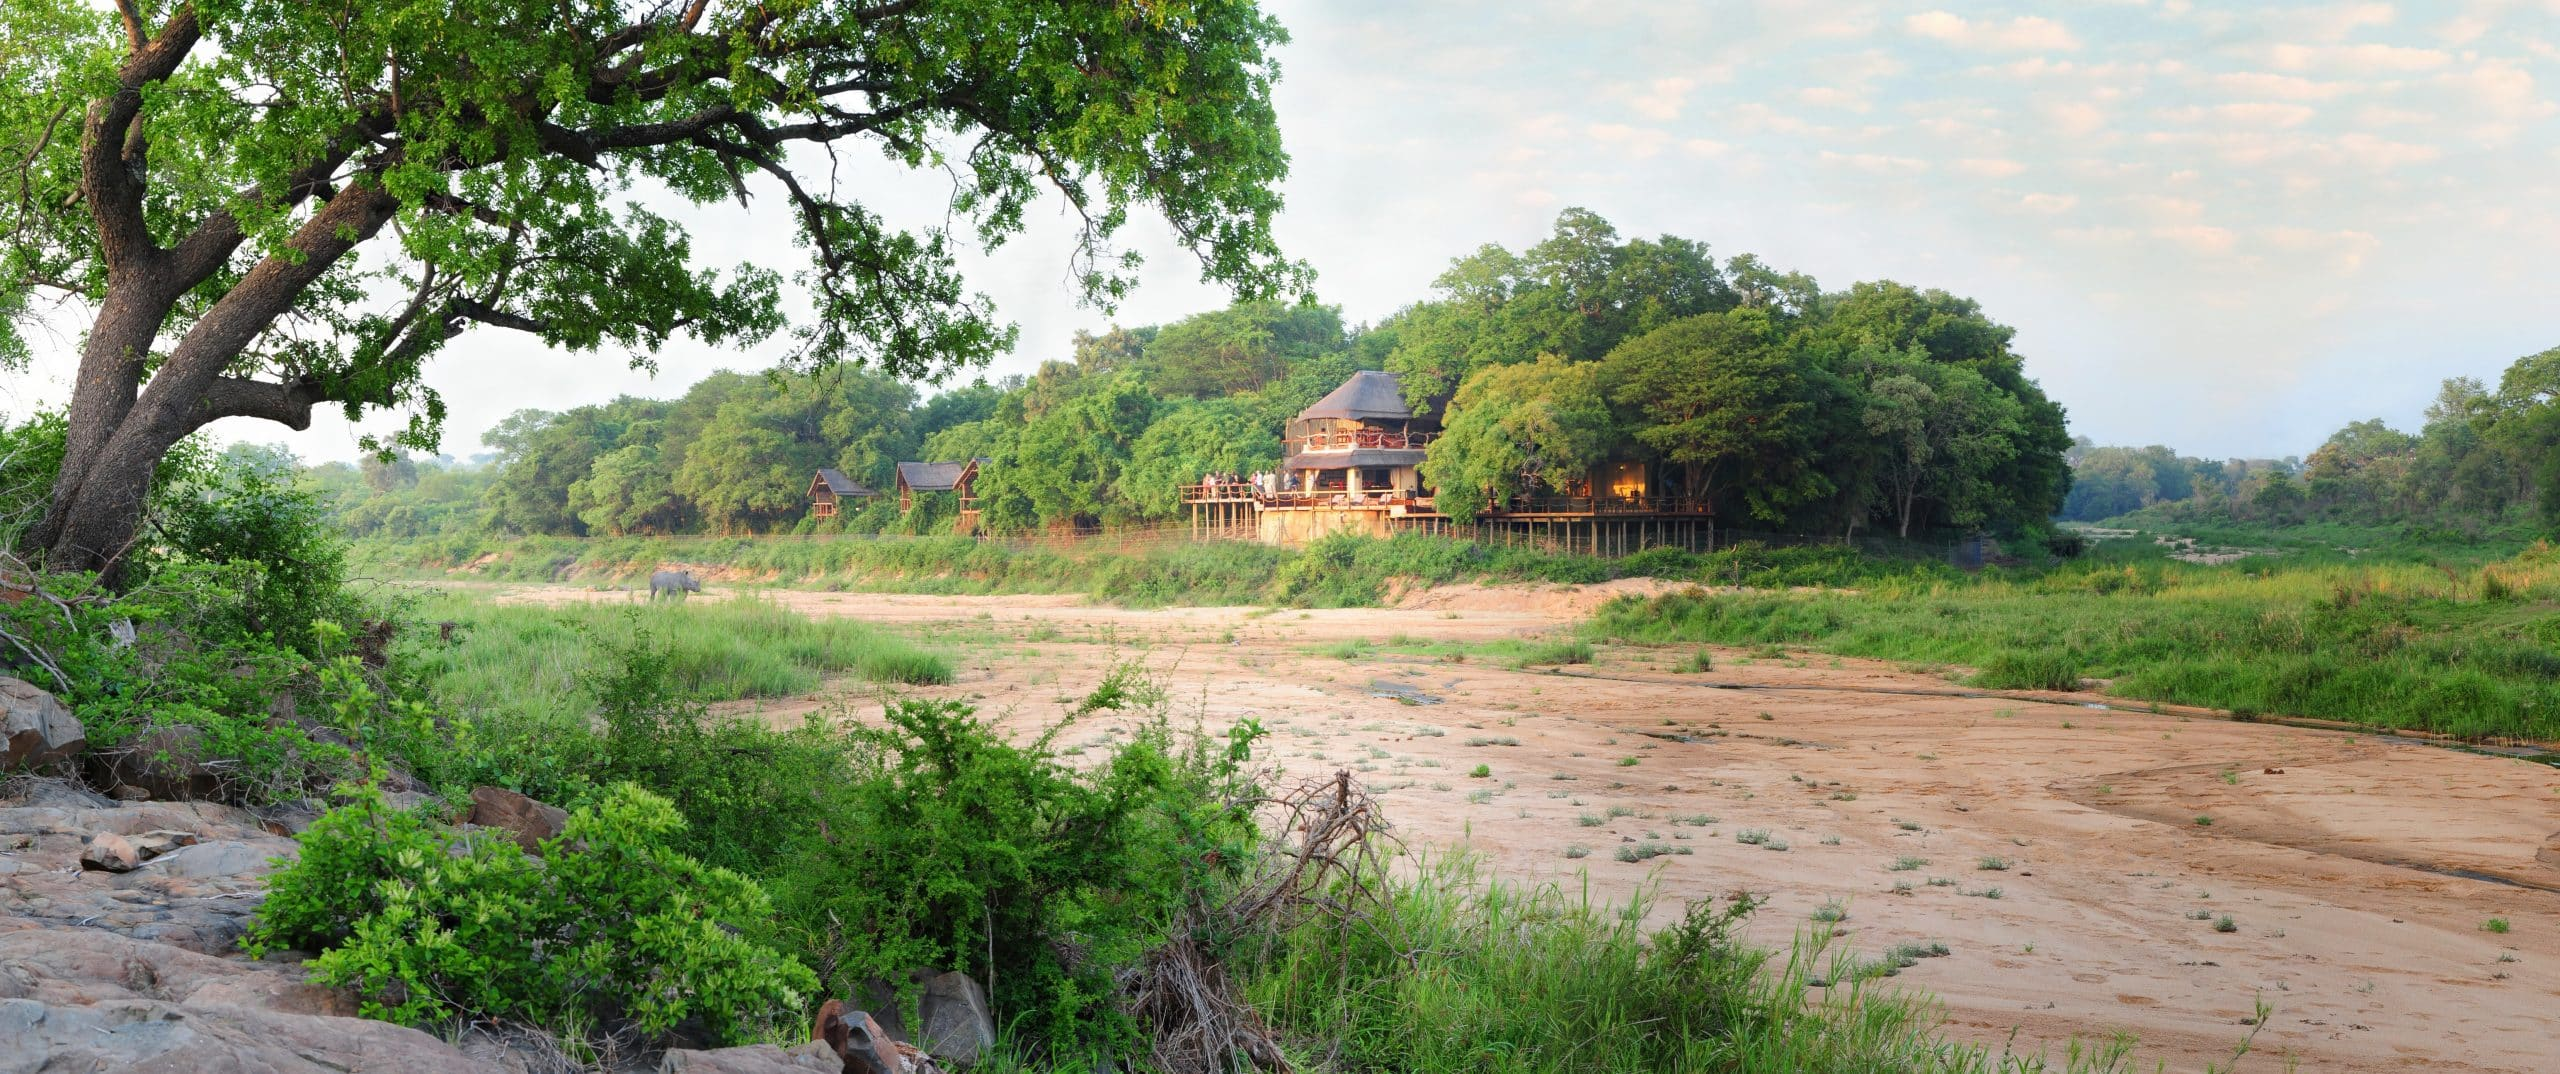 Jock Safari lodge from the river